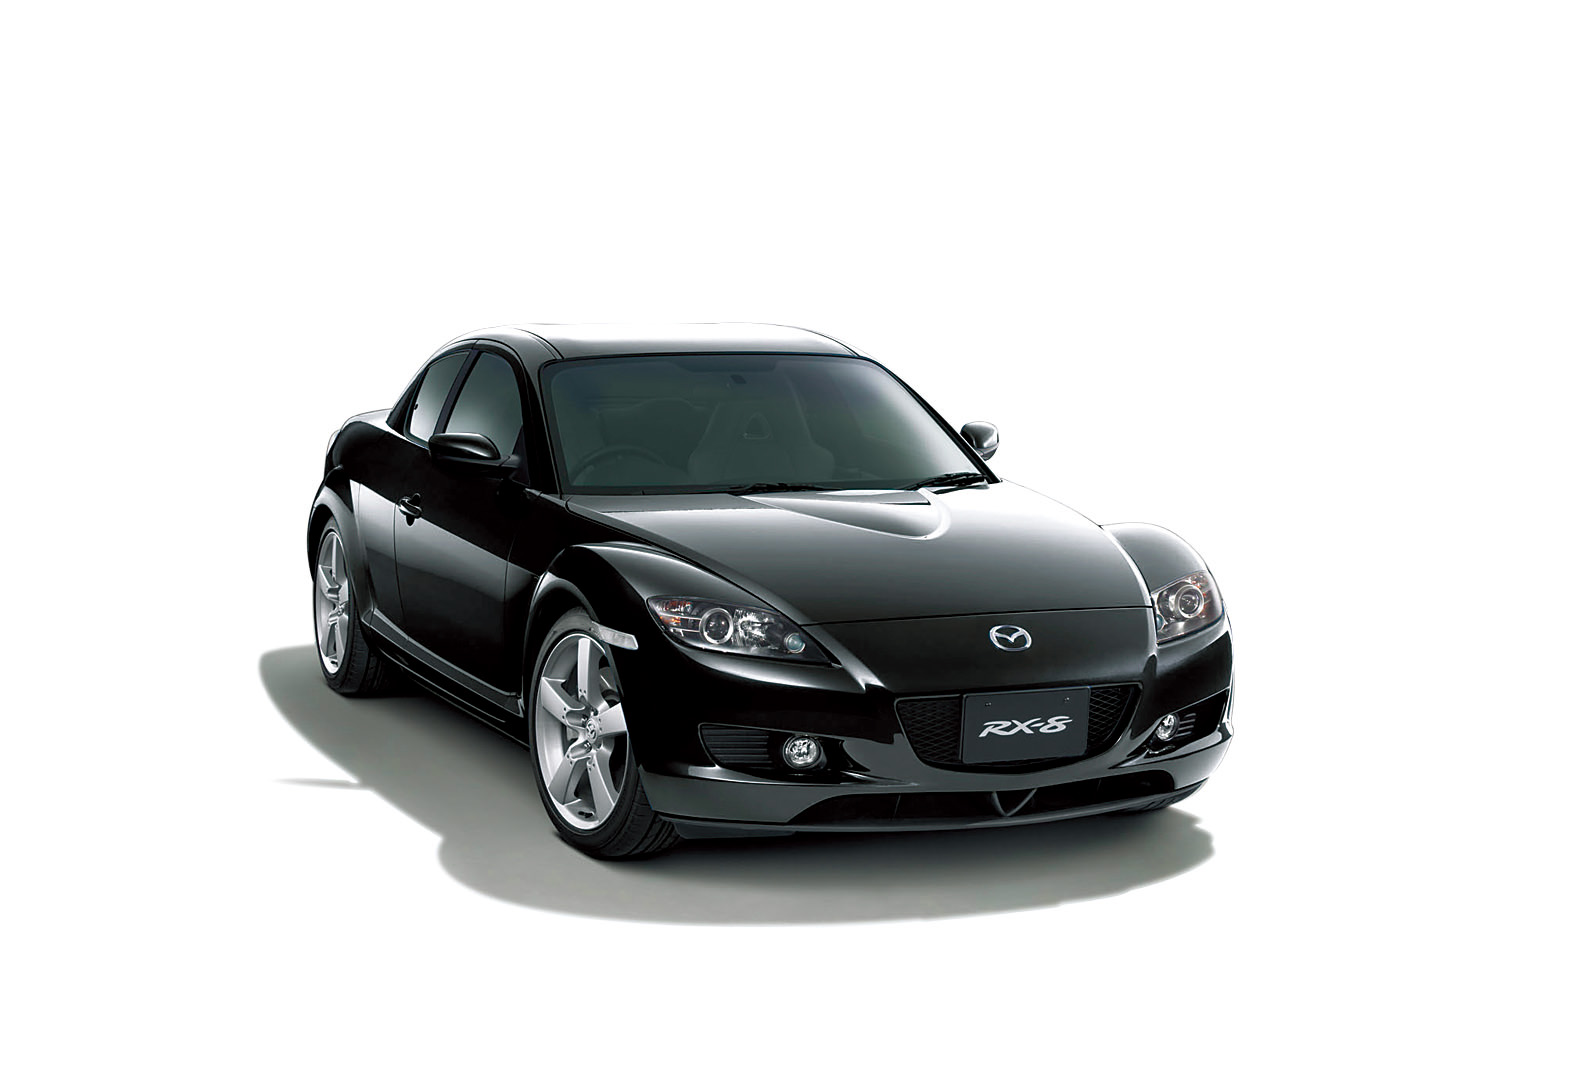 2007 mazda rx 8 review gallery top speed. Black Bedroom Furniture Sets. Home Design Ideas